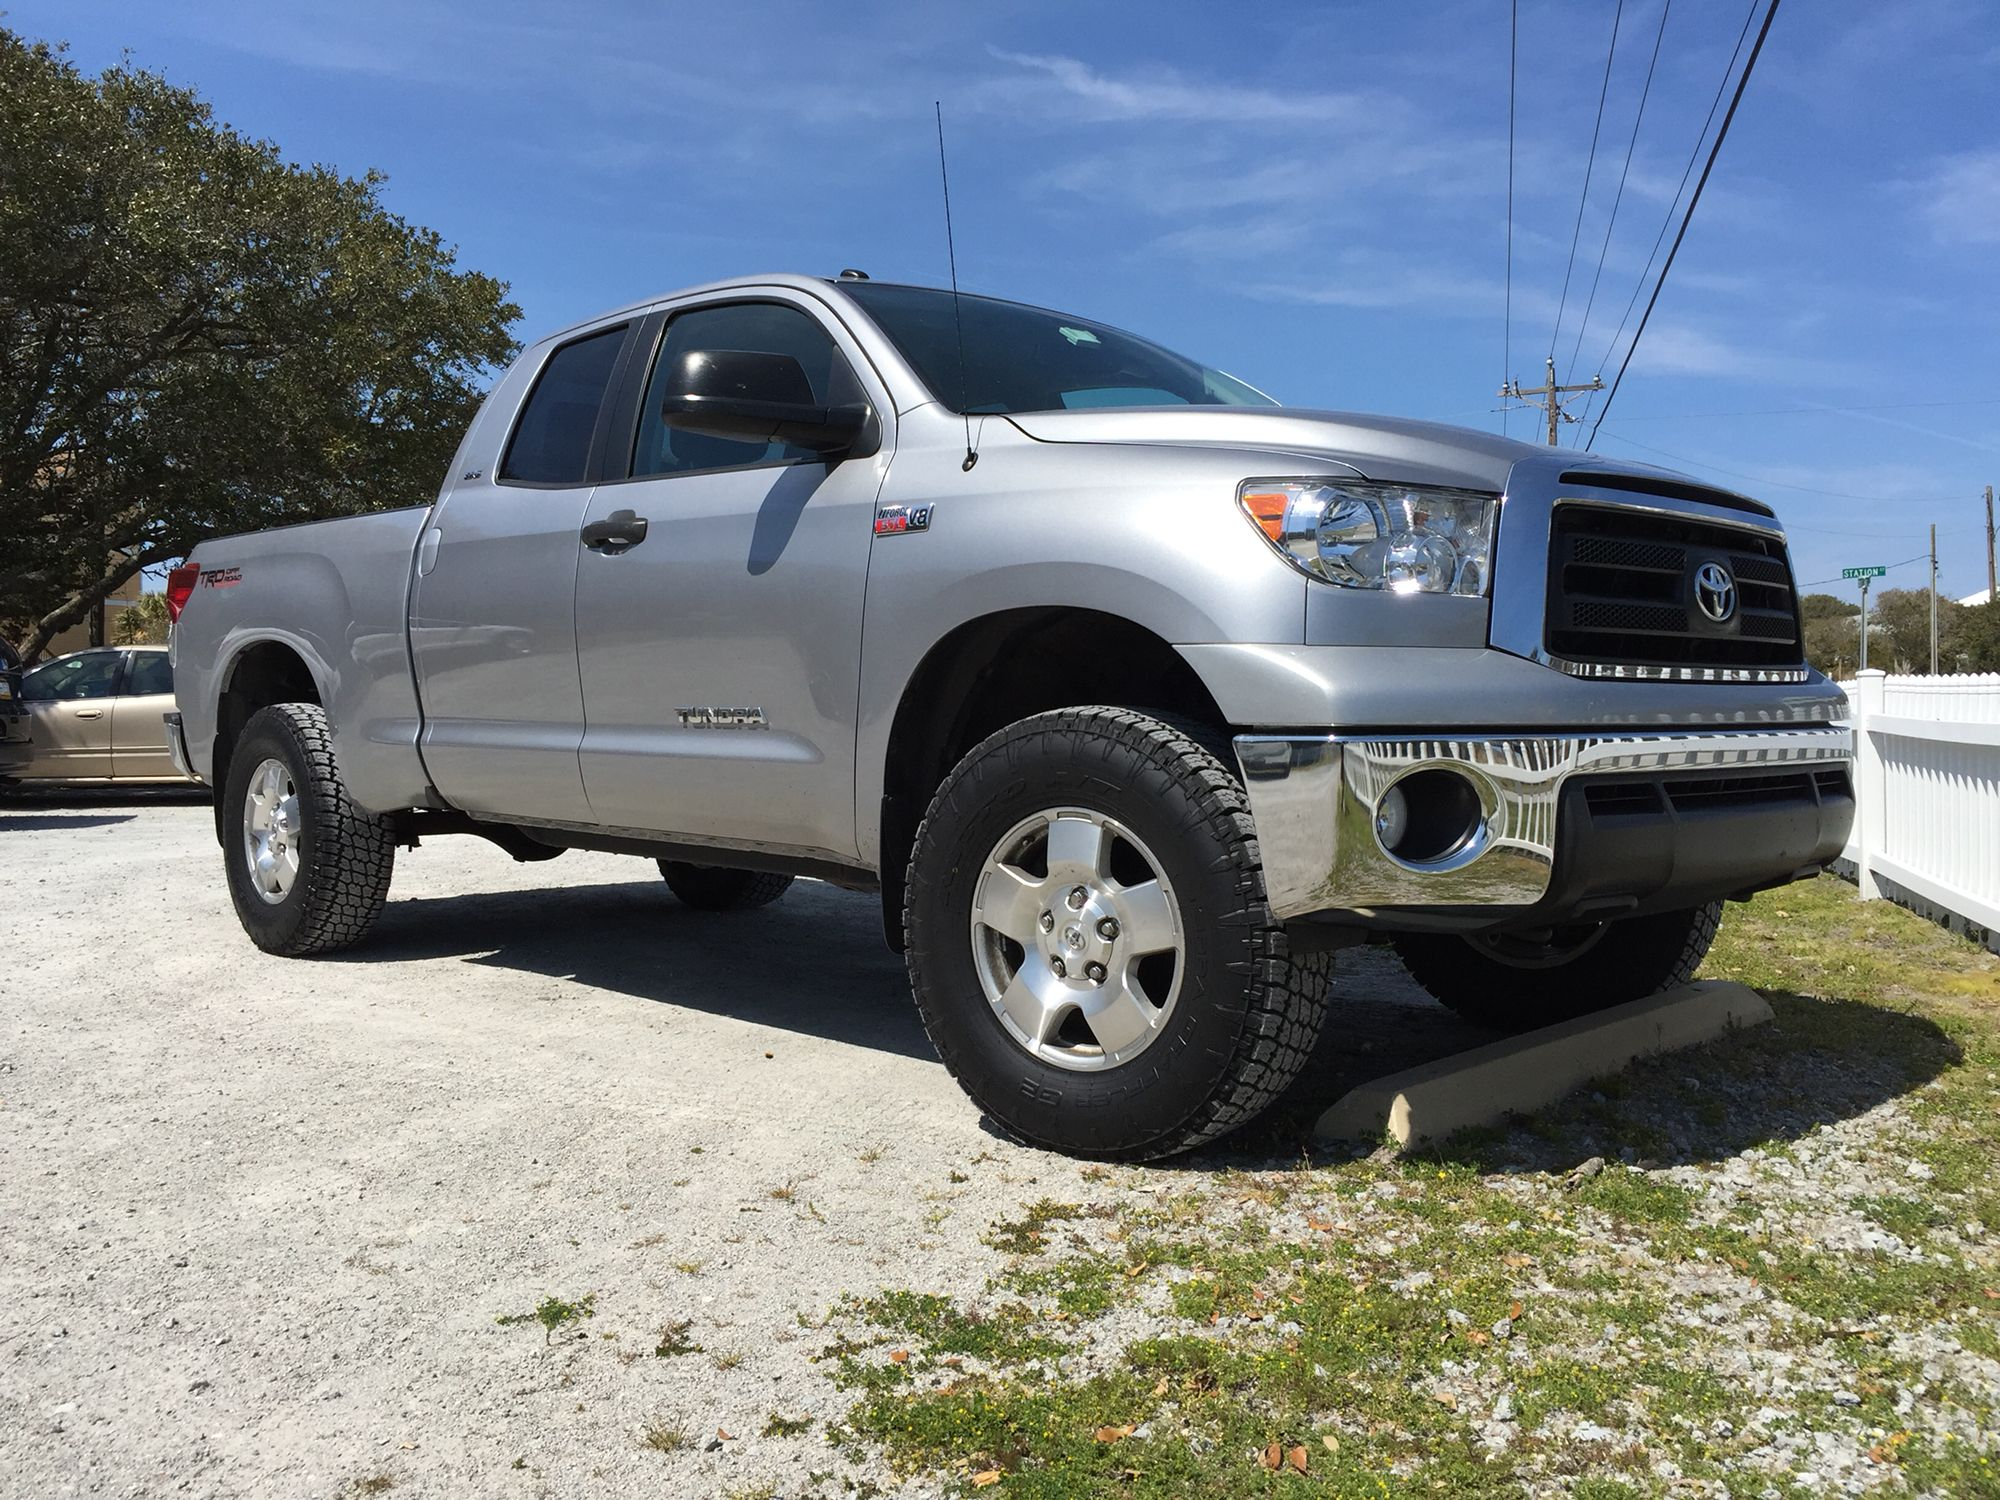 Tundra leveling kit and 295/70r18 Terra Grapplers